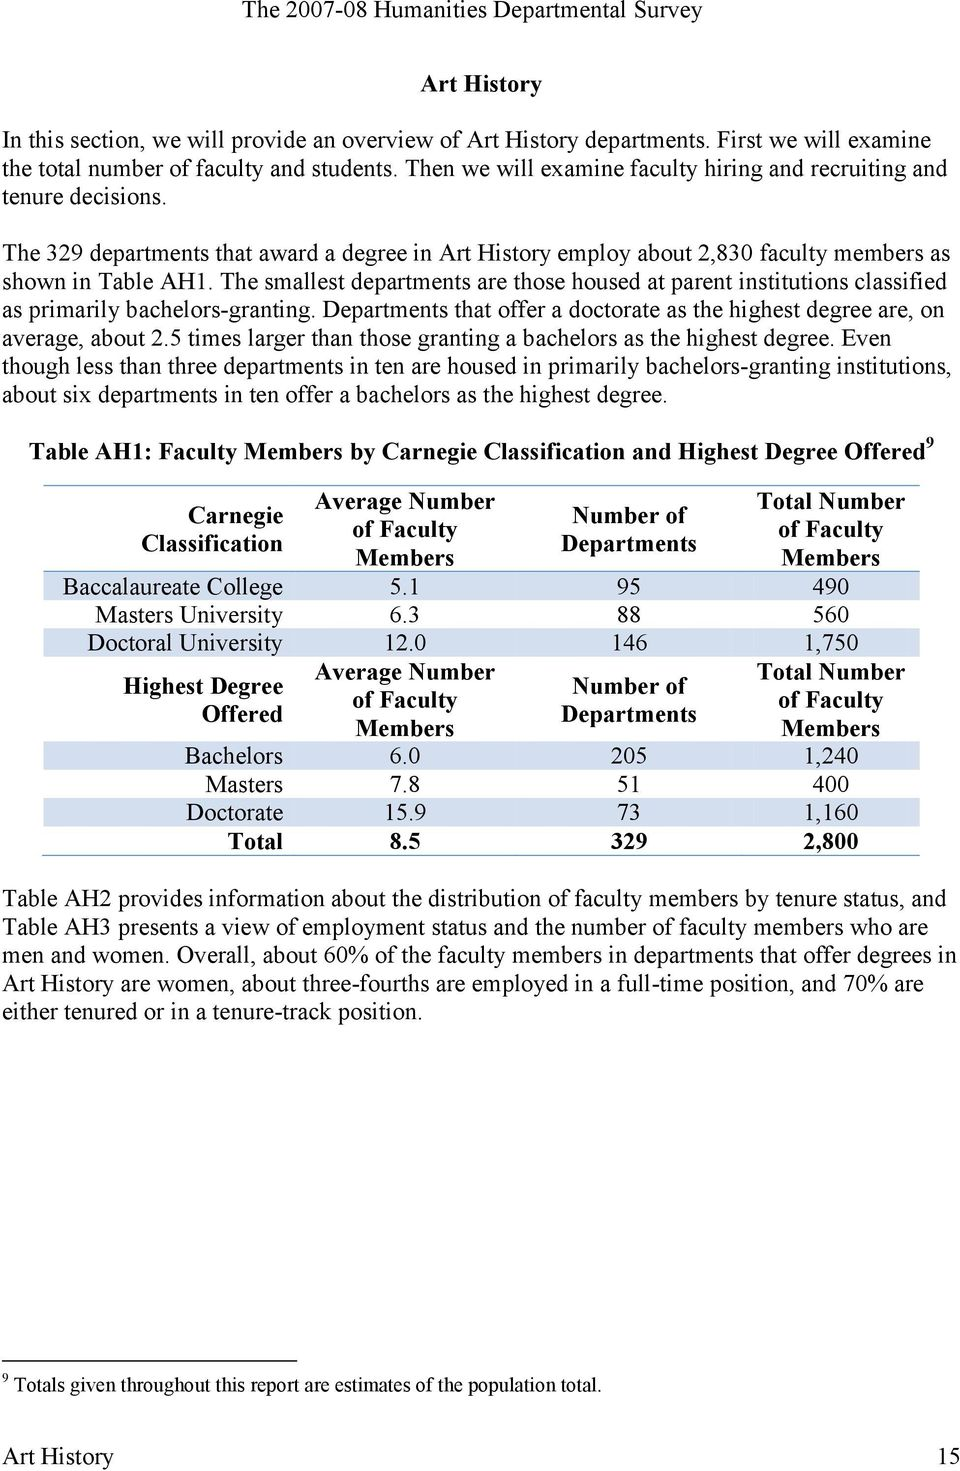 The smallest departments are those housed at parent institutions classified as primarily bachelors-granting. that offer a doctorate as the highest degree are, on average, about 2.